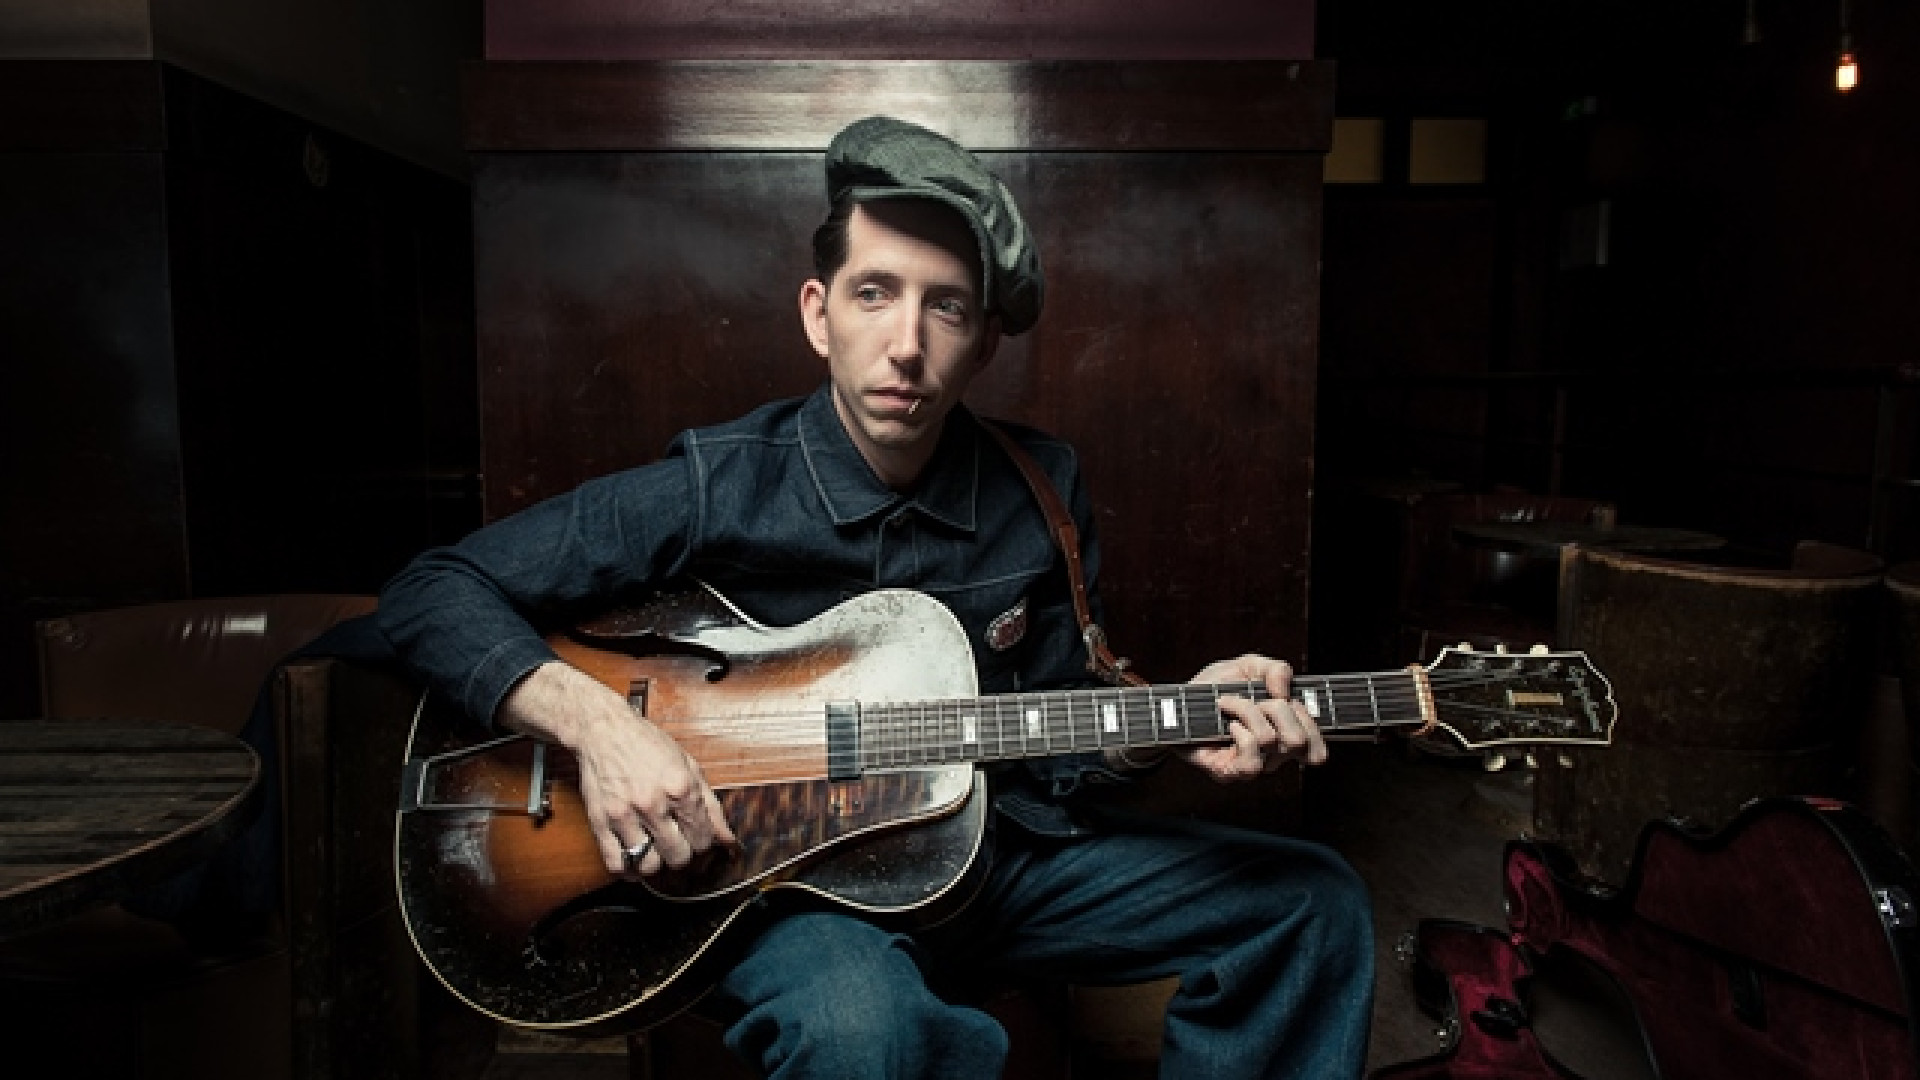 Press shot of Pokey Lafarge playing guitar